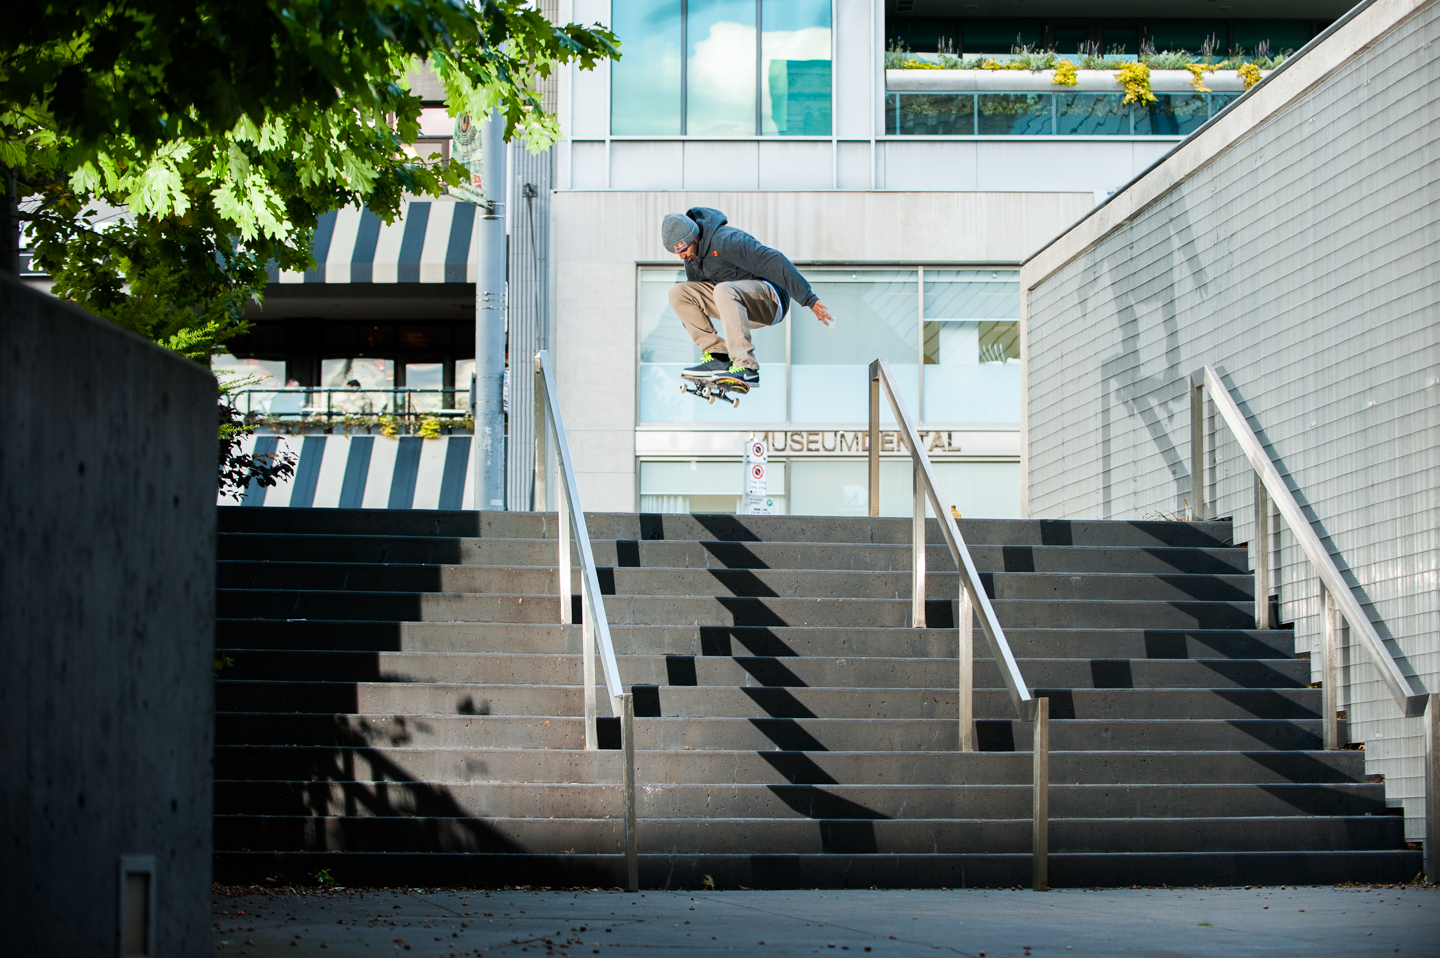 TJ Rogers performs an Ollie down a stair set in Toronto, Canada on October 9th, 2014